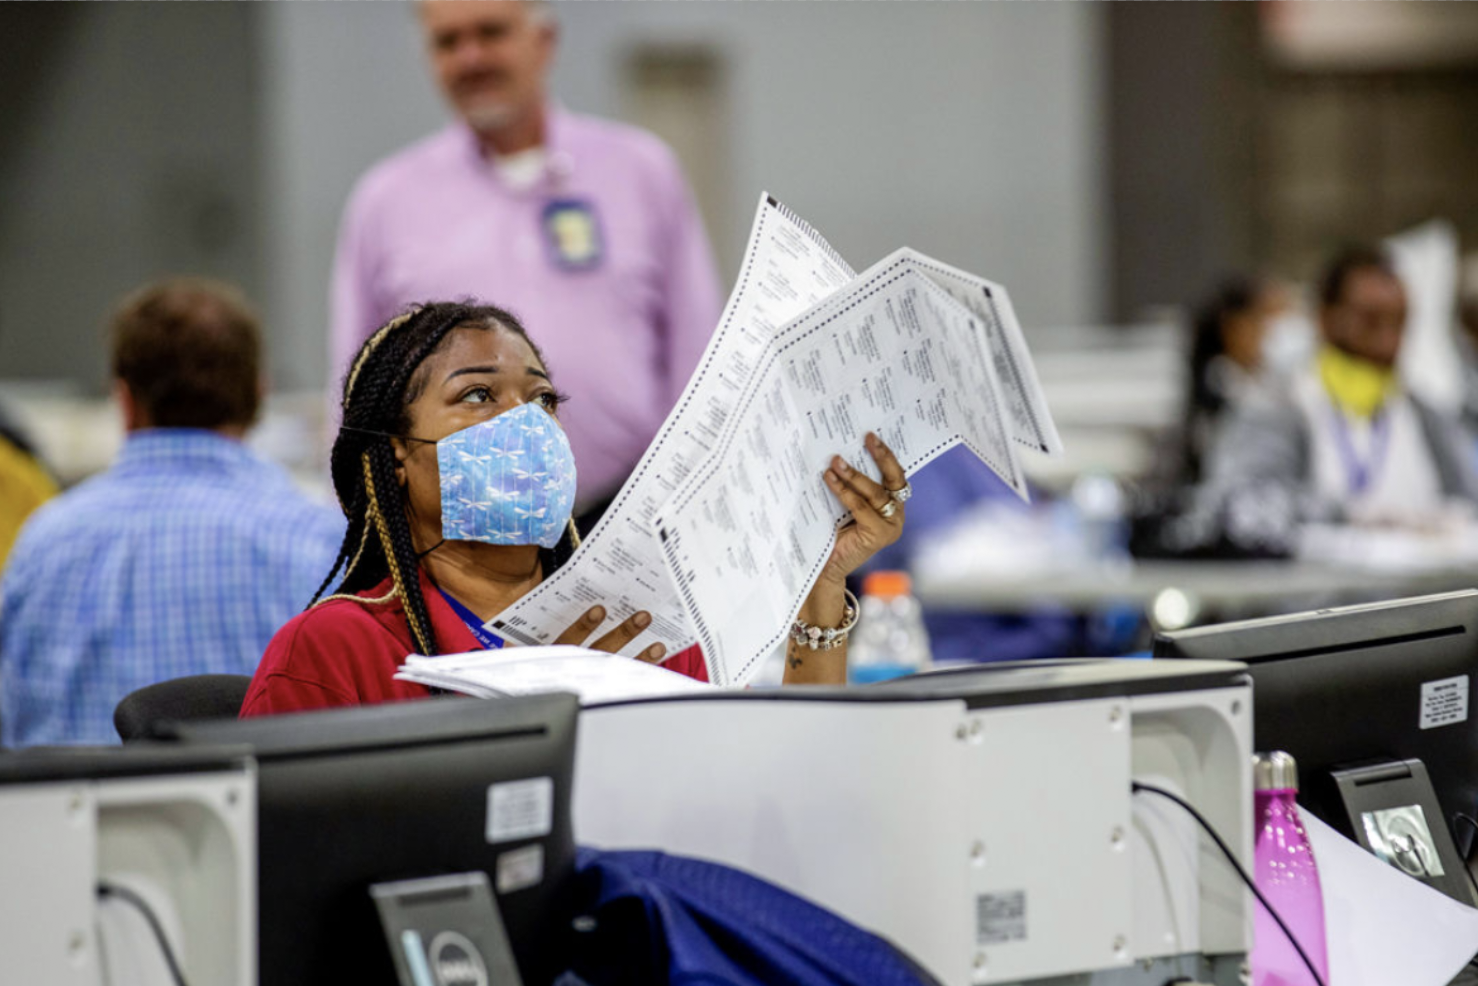 Voting by mail hasn't given a big advantage to one political party, but Republican rhetoric could change the dynamic for November's election. ALYSSA POINTER/ATLANTA JOURNAL-CONSTITUTION VIA AP